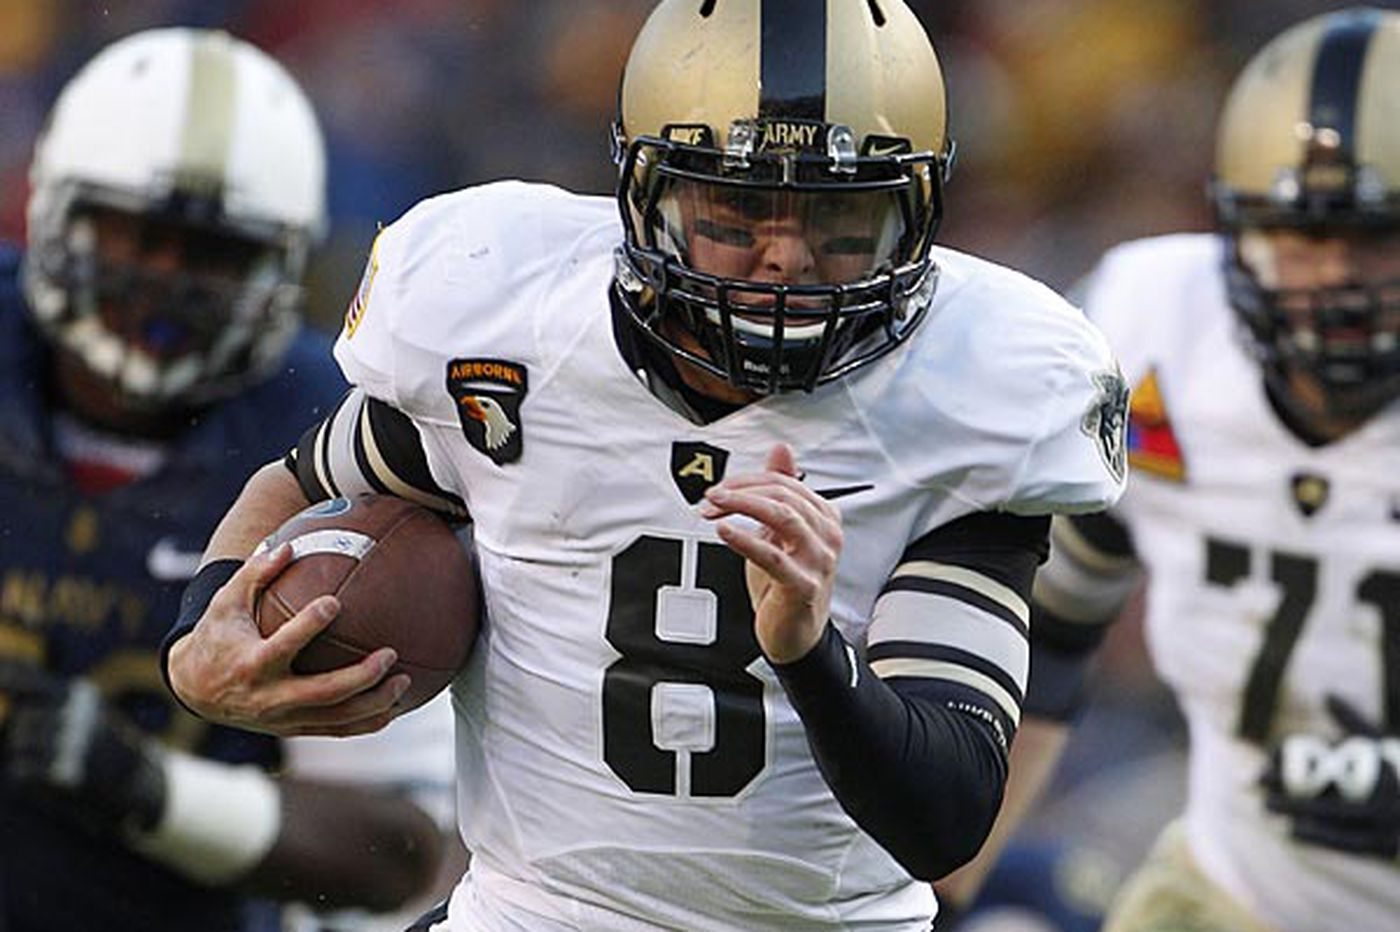 Army quarterback Trent Steelman's goal: Beat Navy